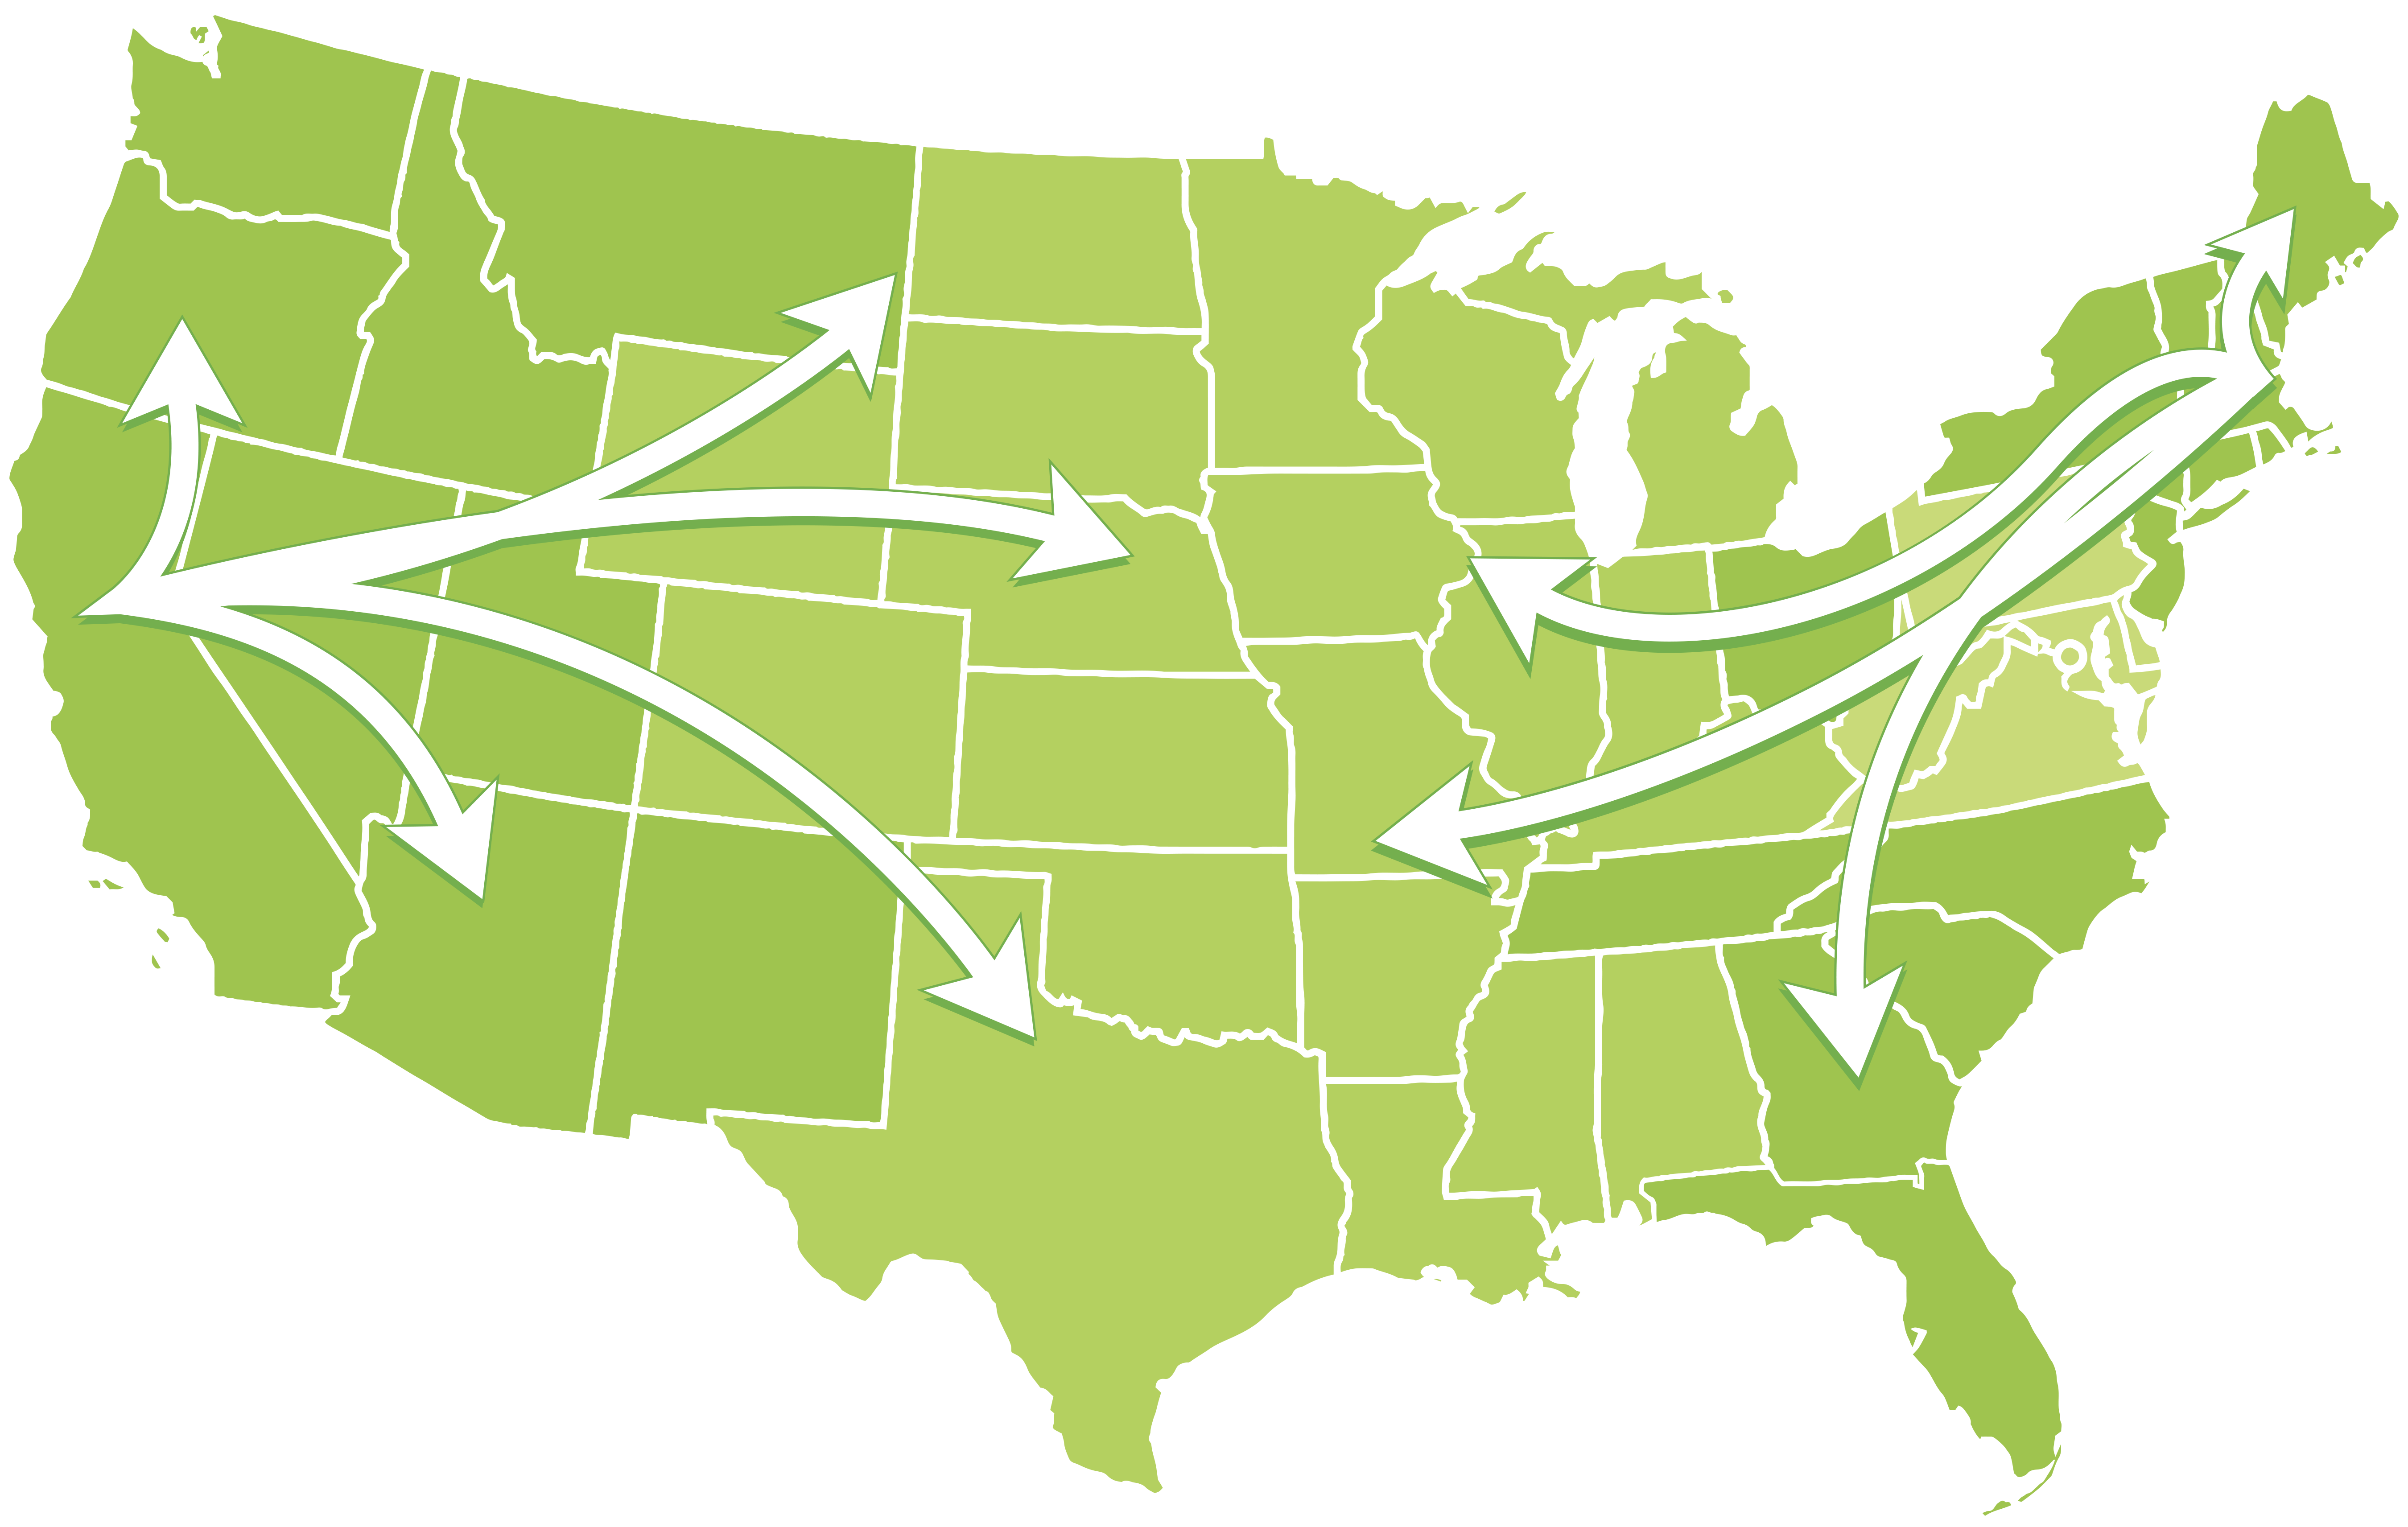 shipping-map-new.png